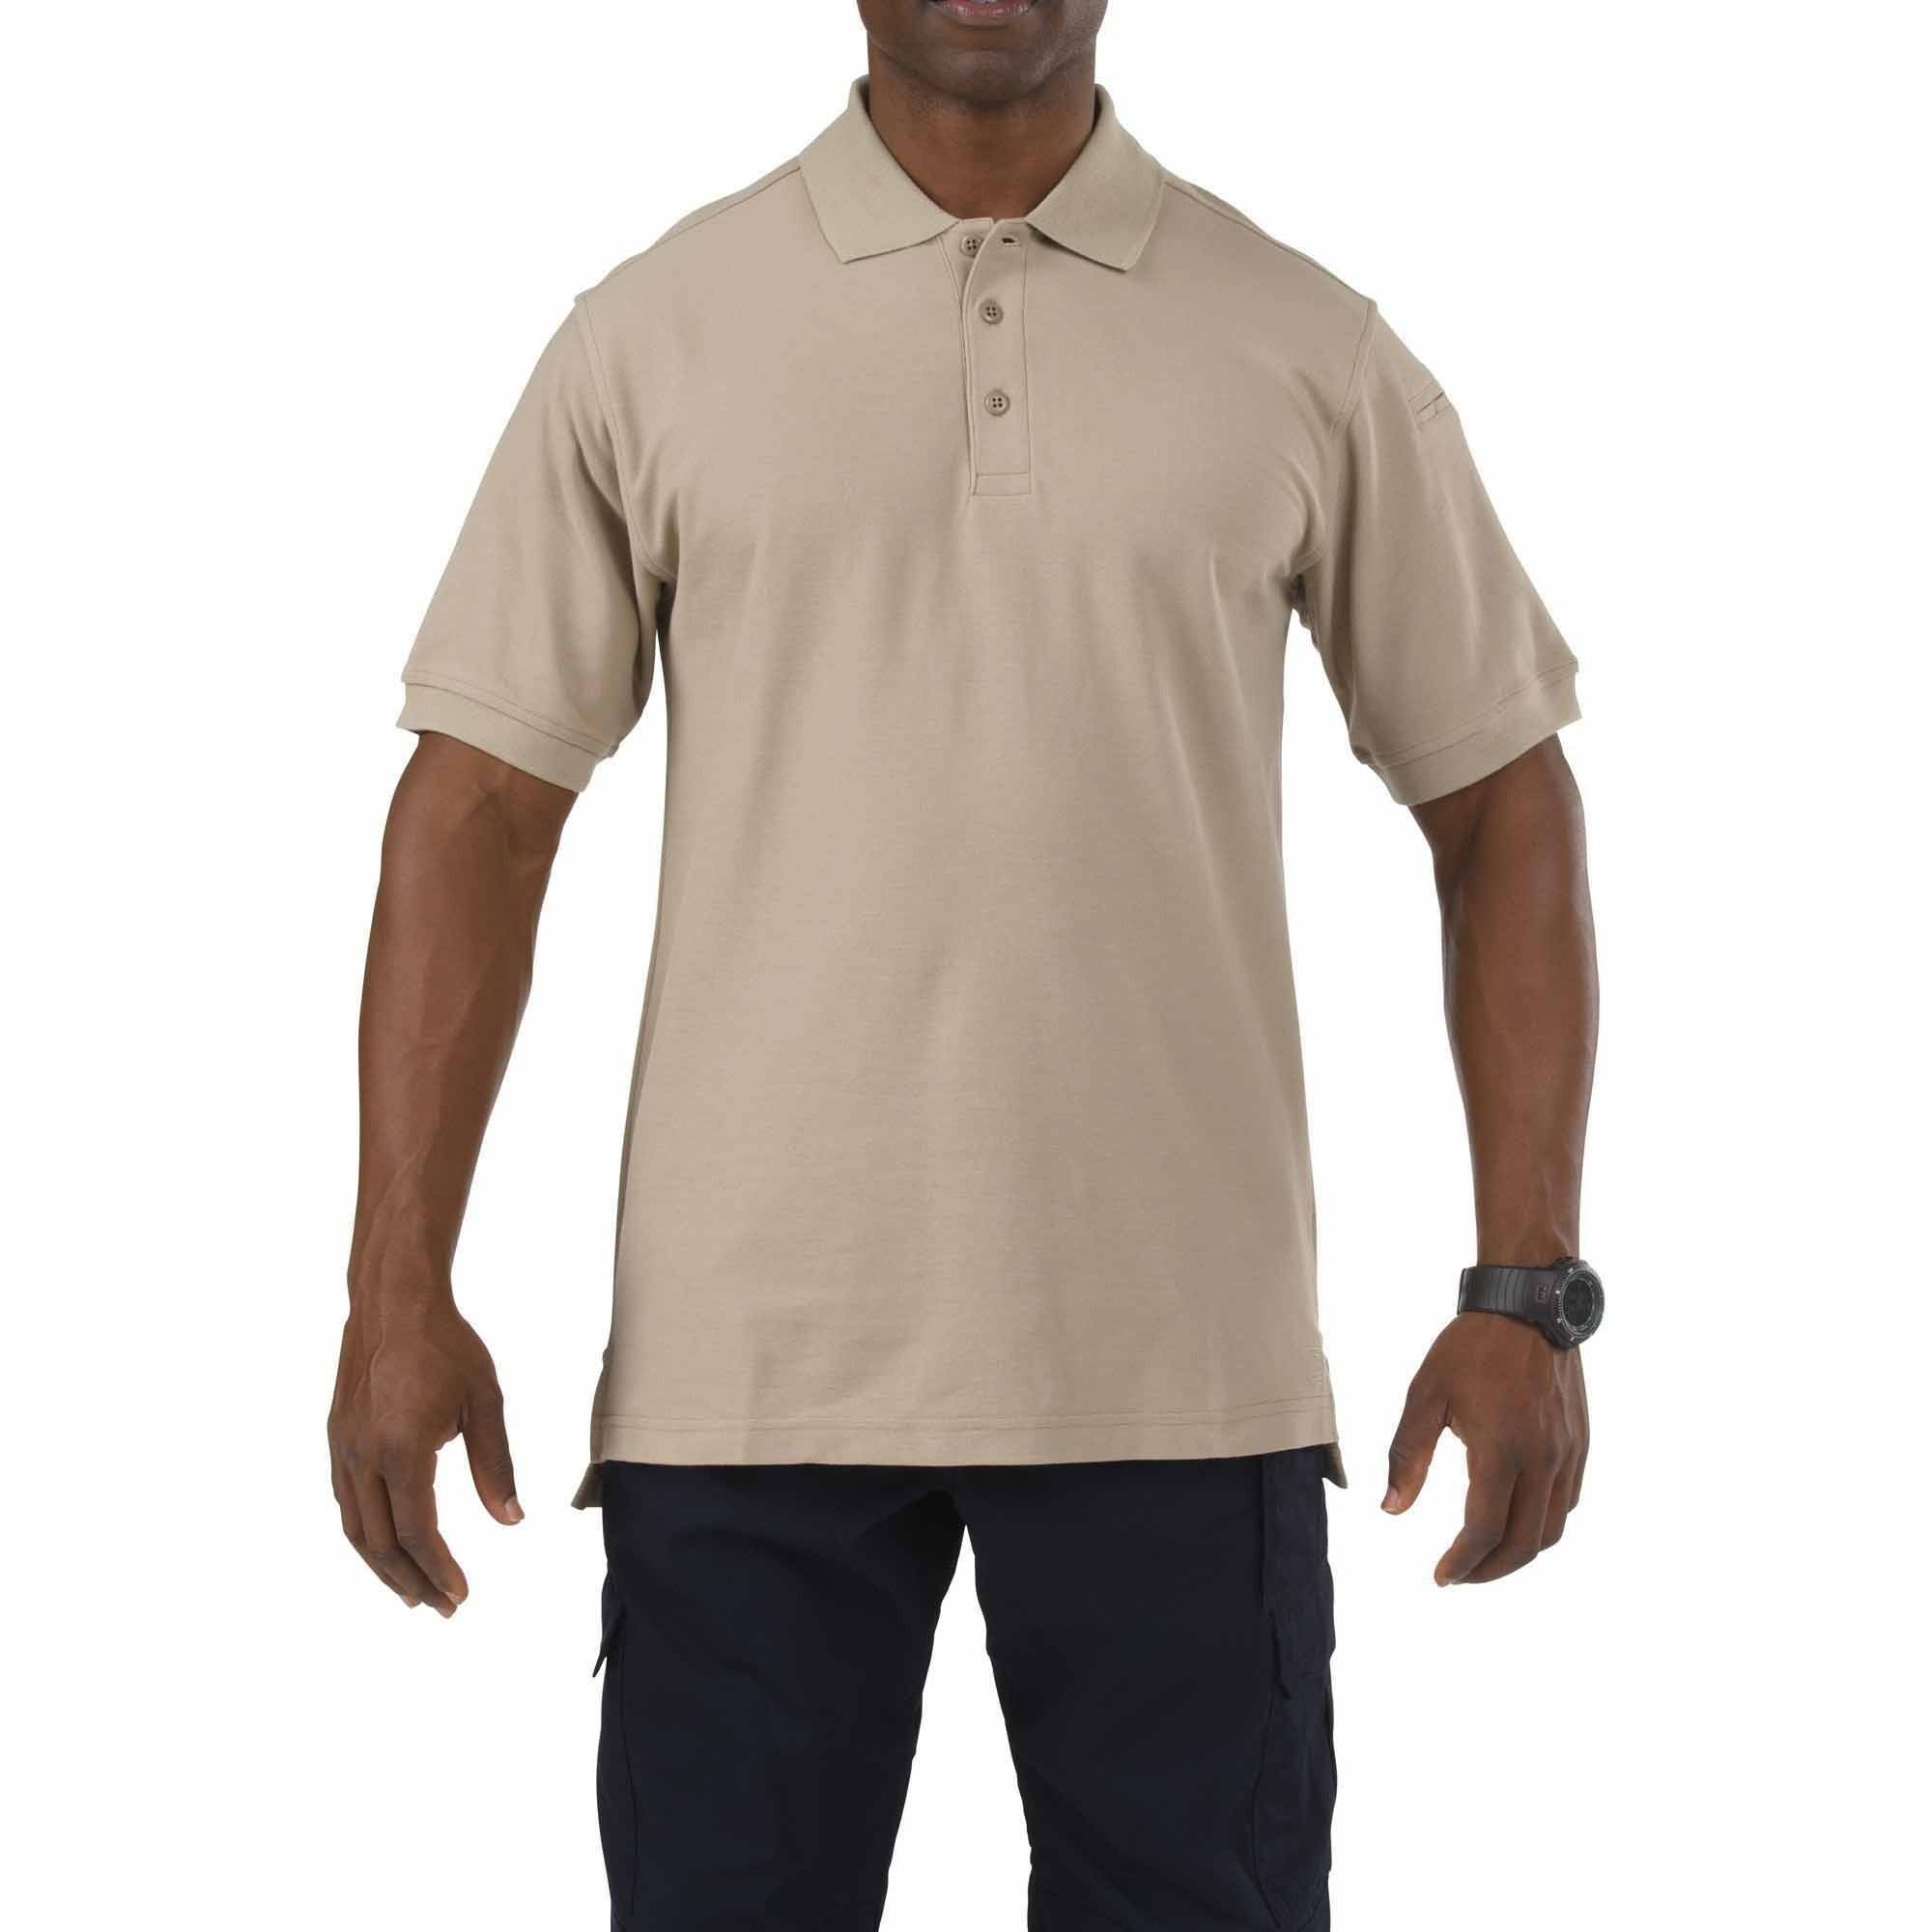 Men Utility Polo Short Sleeve, Silver Tan, Tall